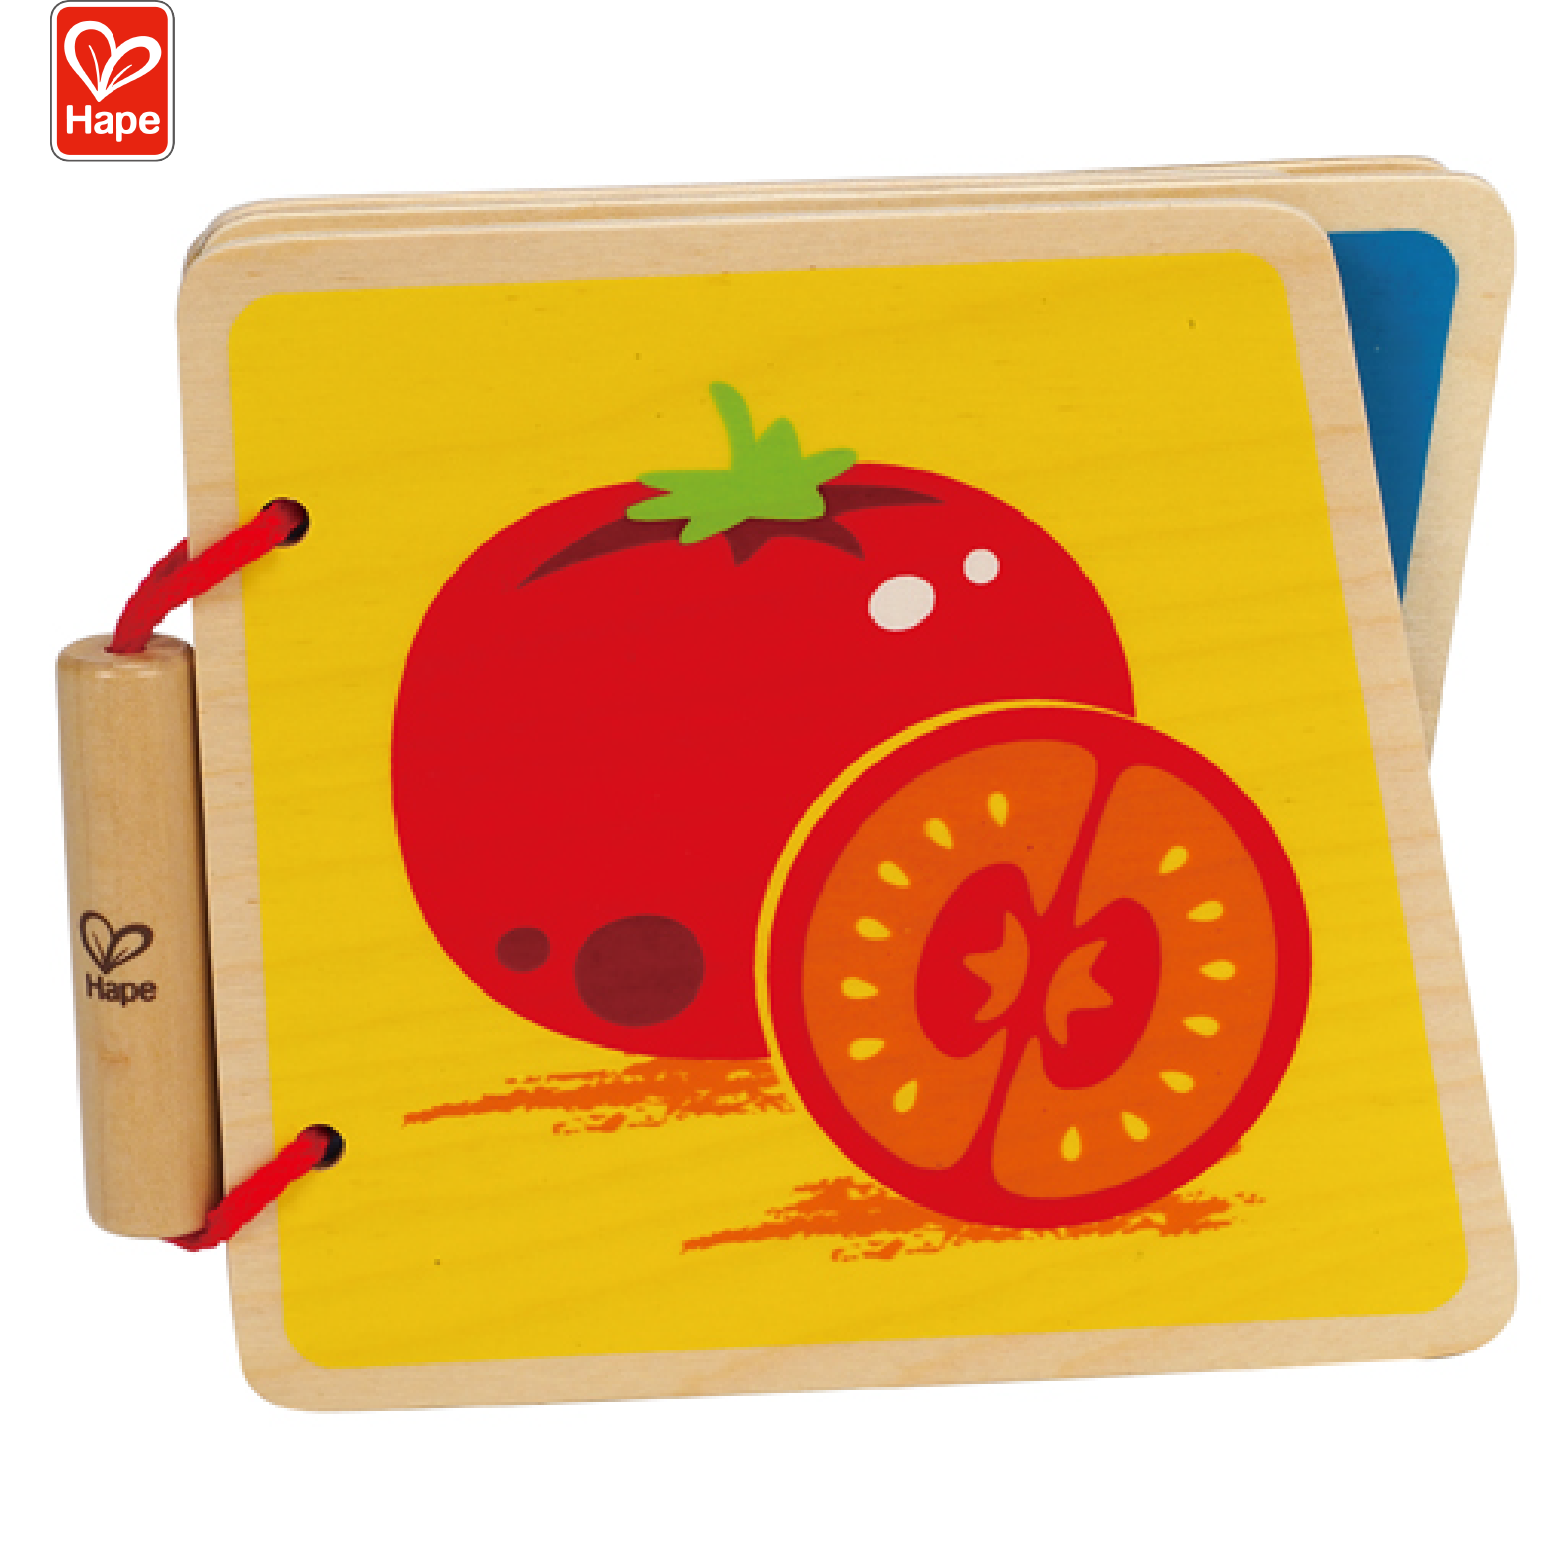 Hape Kids Educational Toy Baby Learning Vegetables Wooden Book